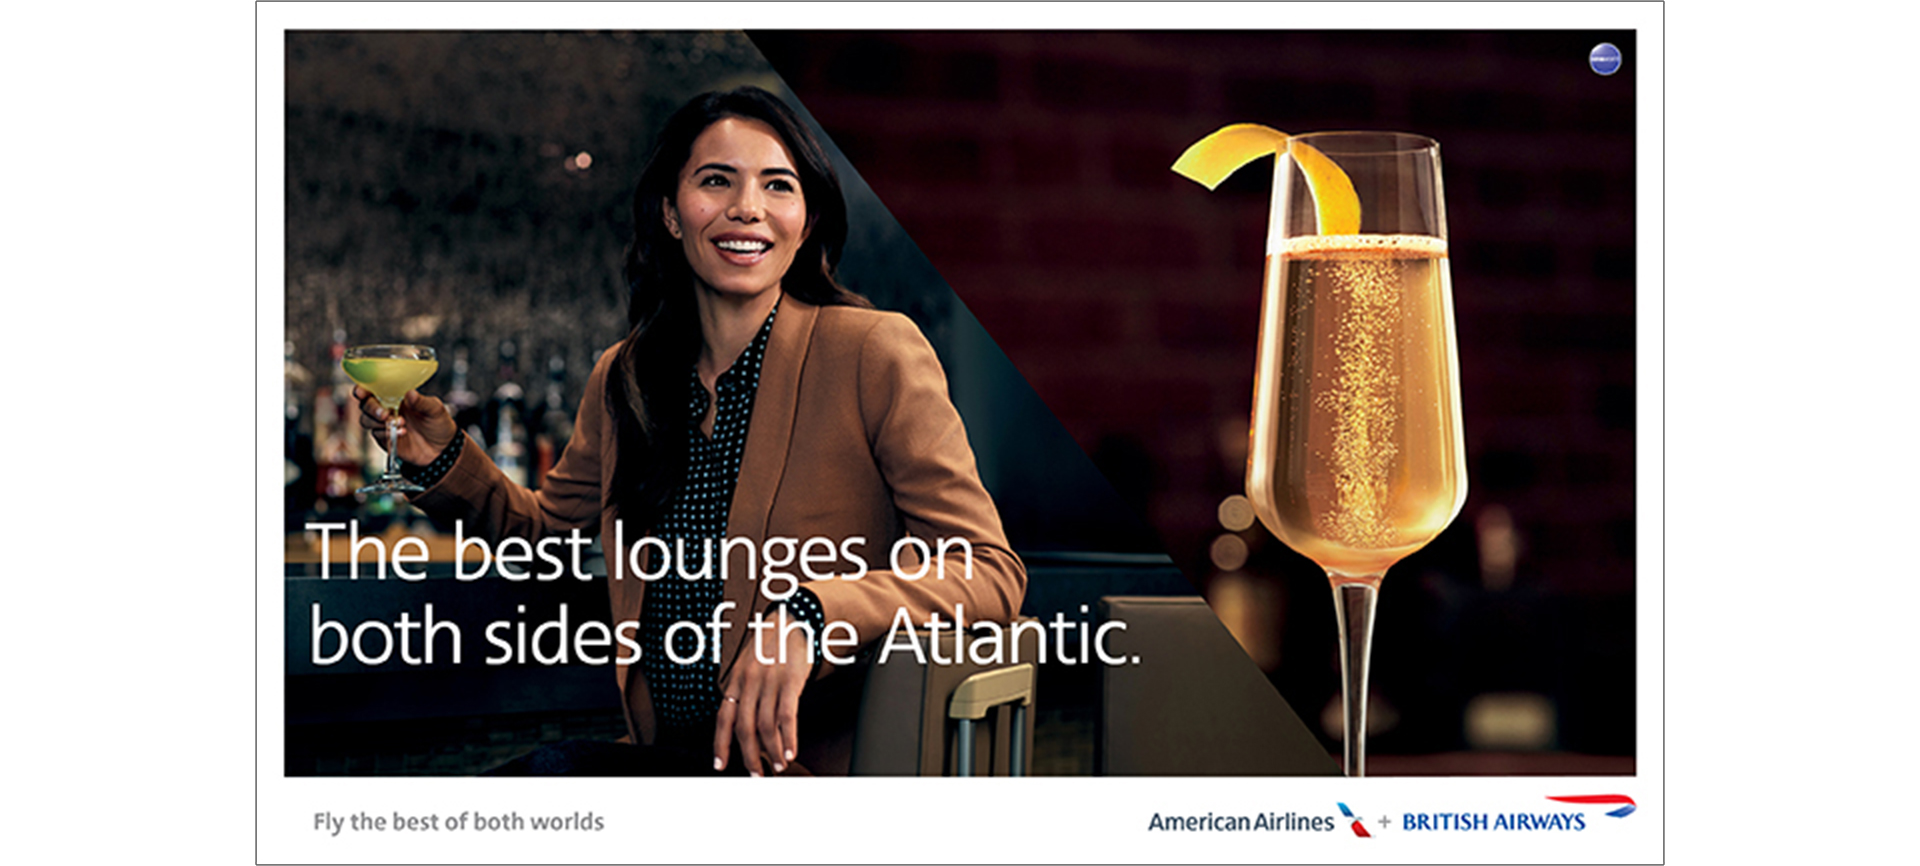 american-airlines-retouching-production